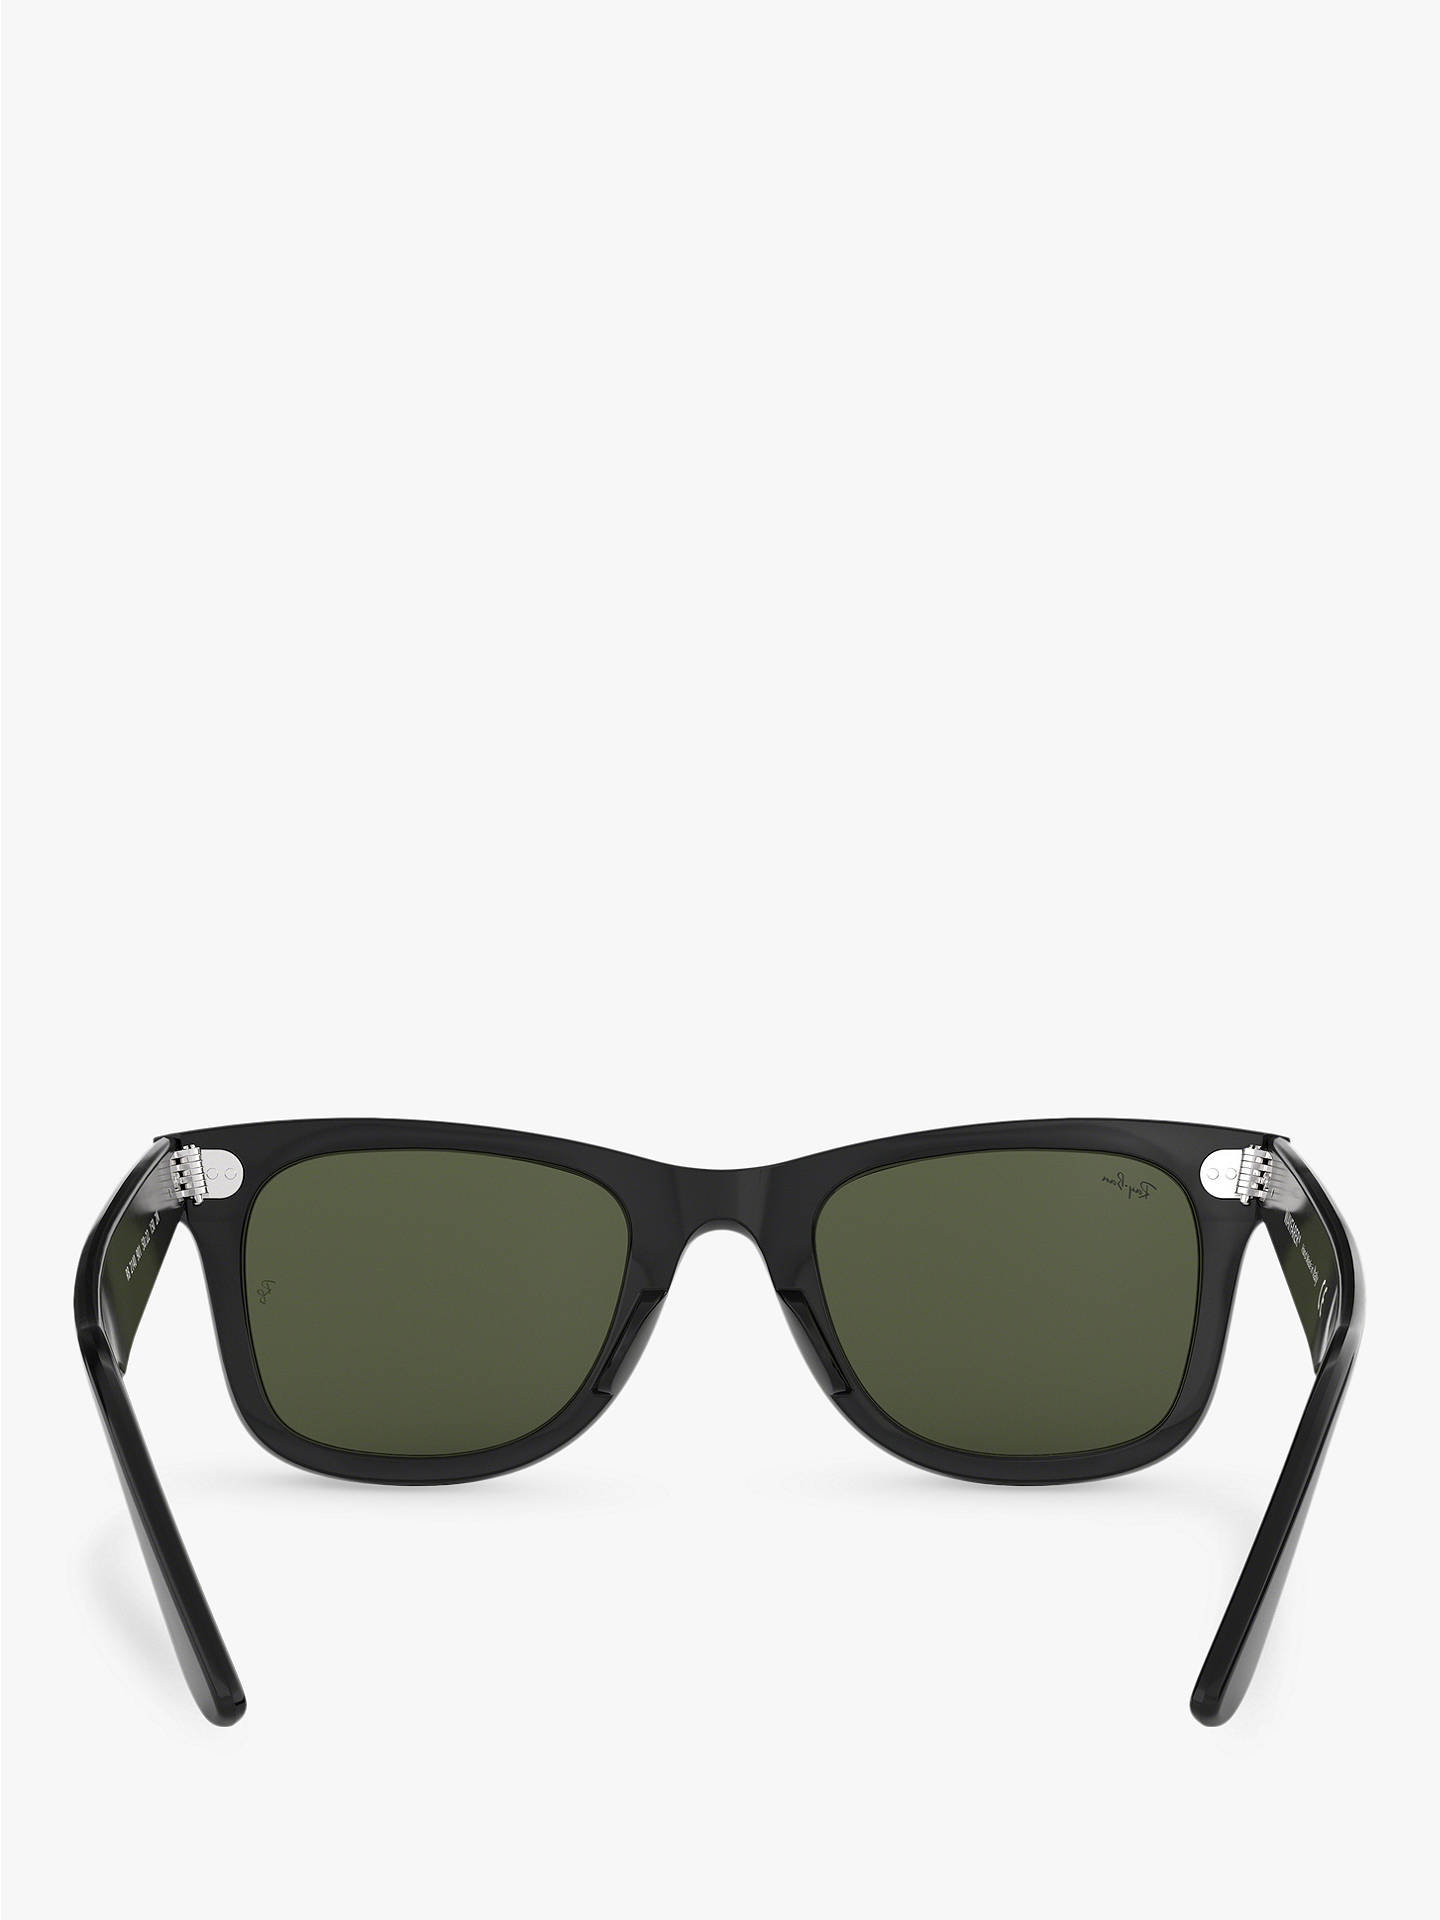 BuyRay-Ban RB2140 Unisex New Wayfarer Sunglasses, Black/Green Online at johnlewis.com